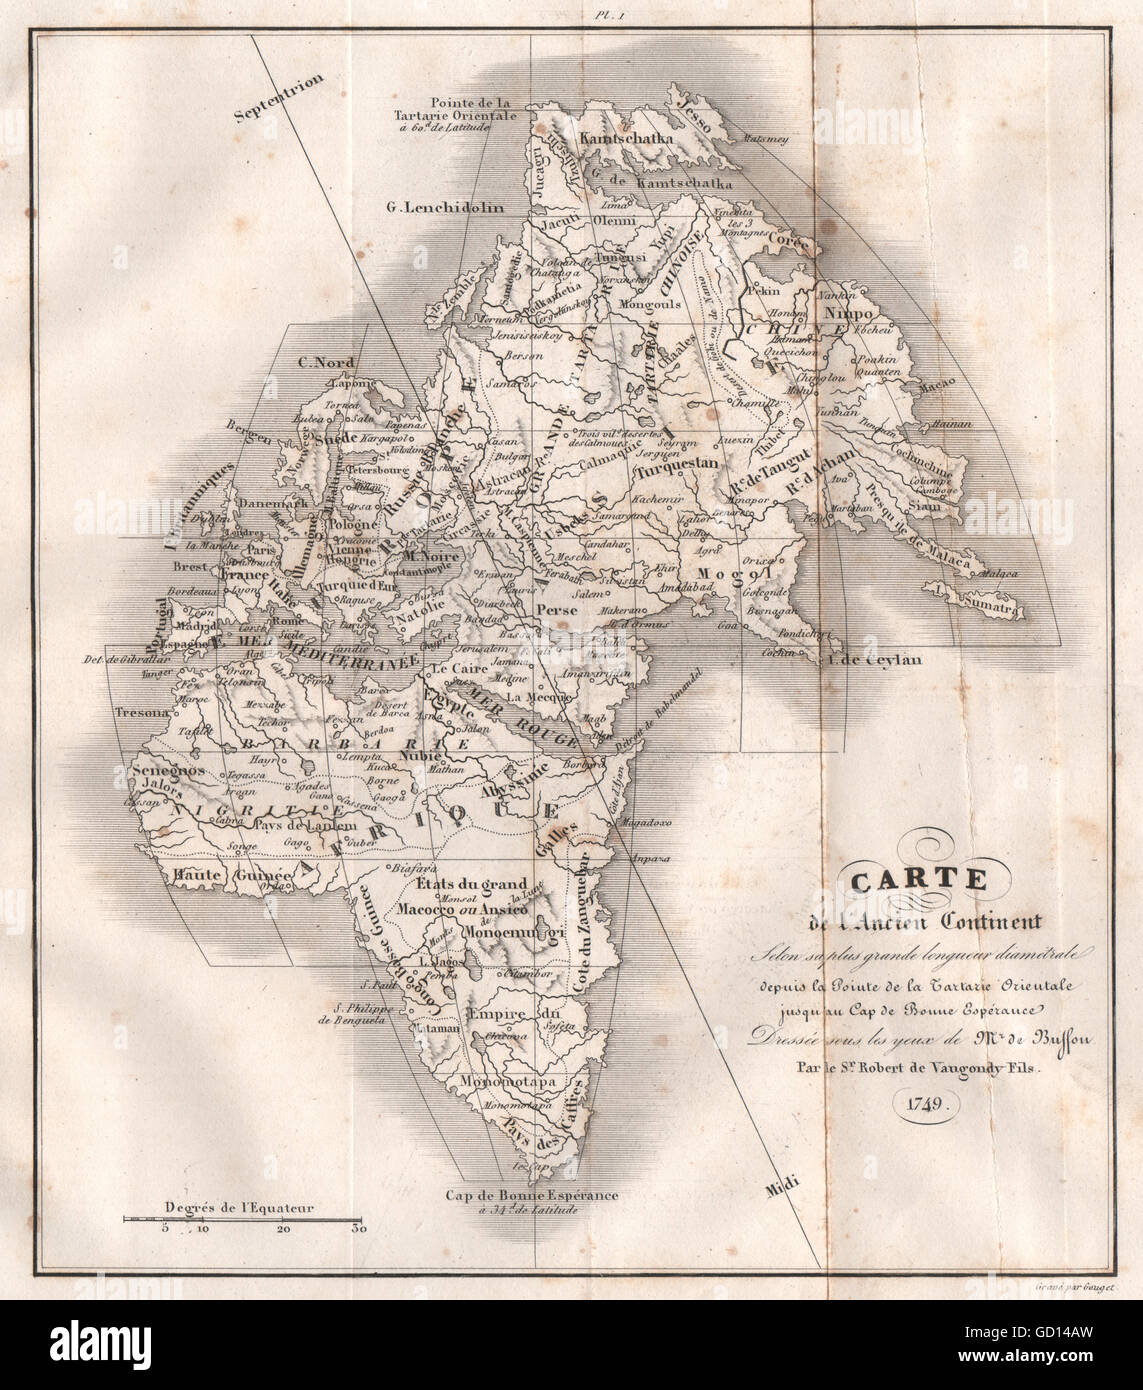 EASTERN HEMISPHERE: 'Ancien Continent' Europe Asia Africa 1749 VAUGONDY 1837 map - Stock Image